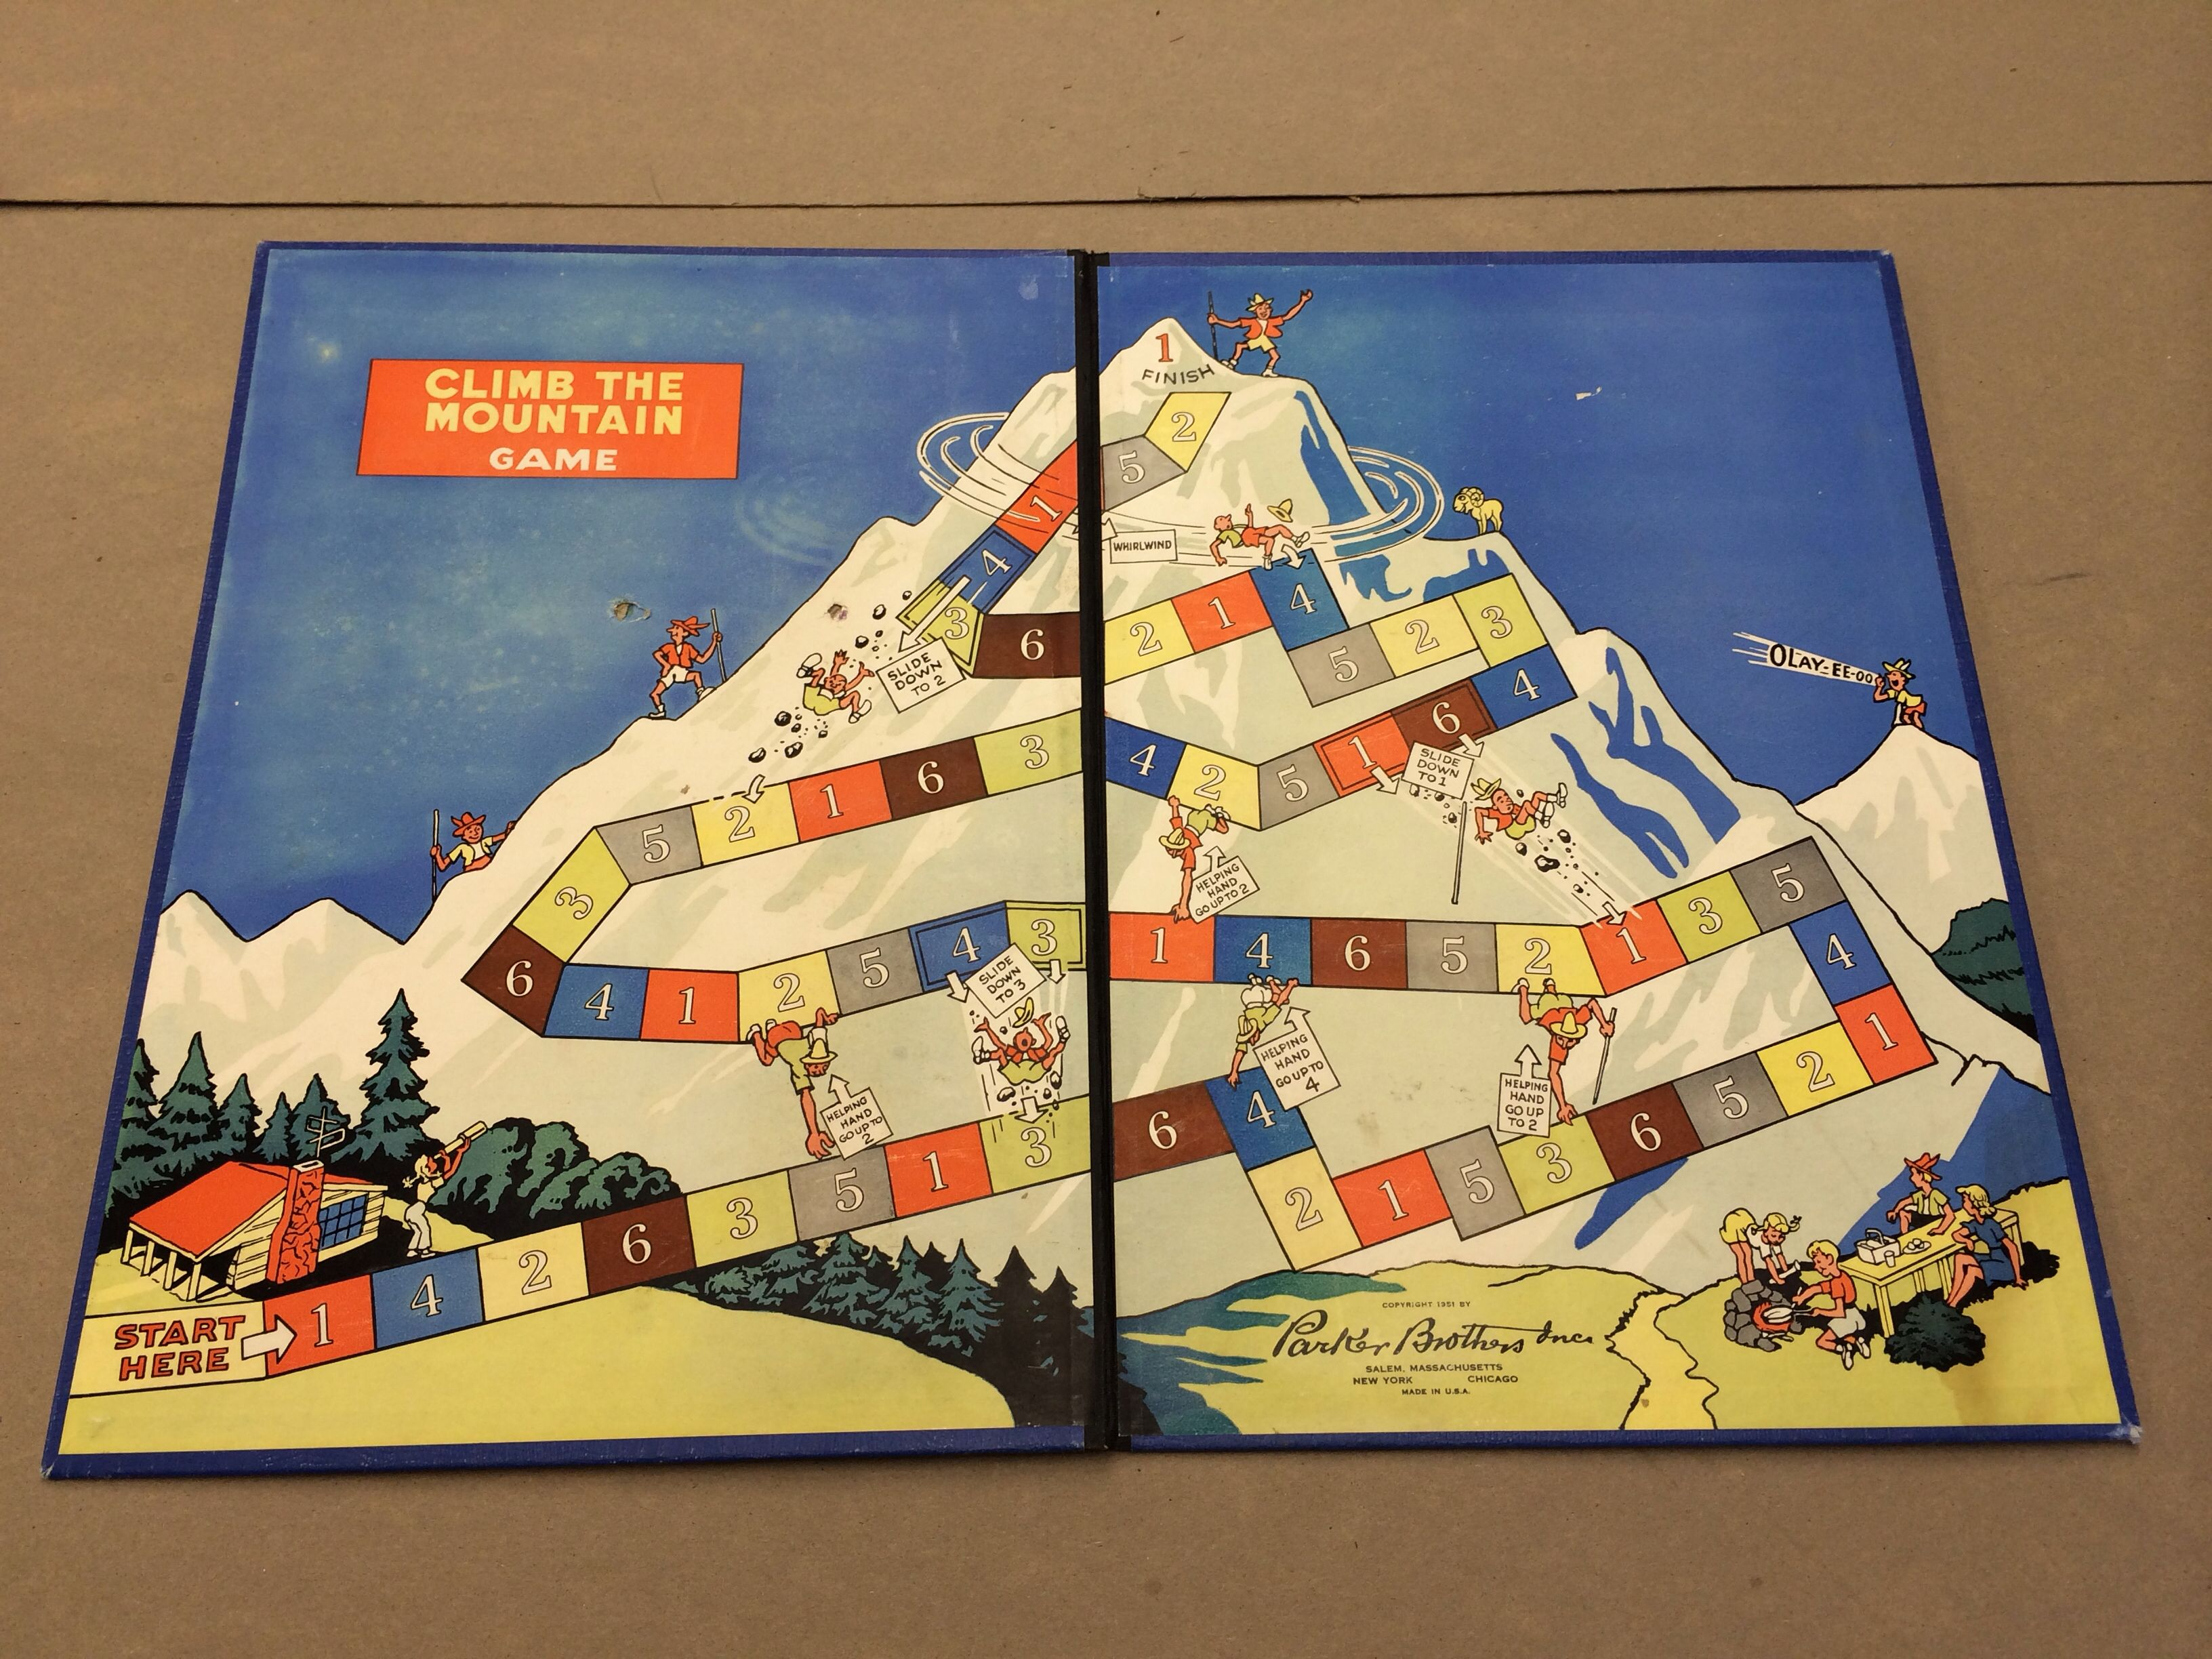 Vintage board games make great wall decor for a kids room or game ...